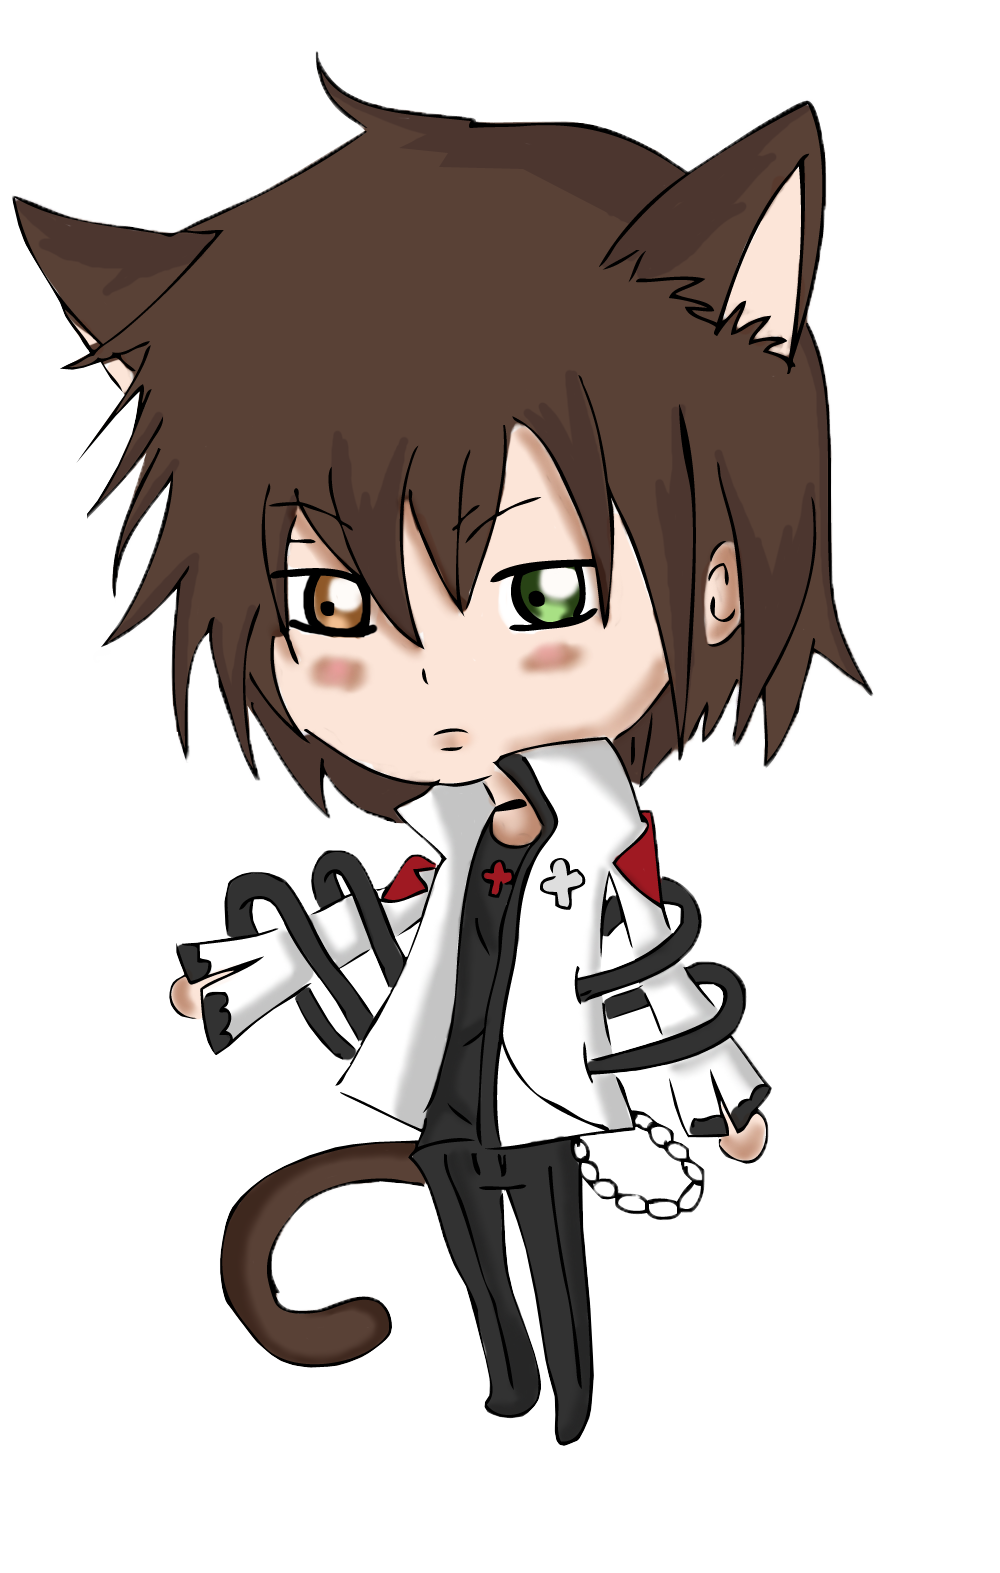 Anime boy hoodie png. Images for chibi with